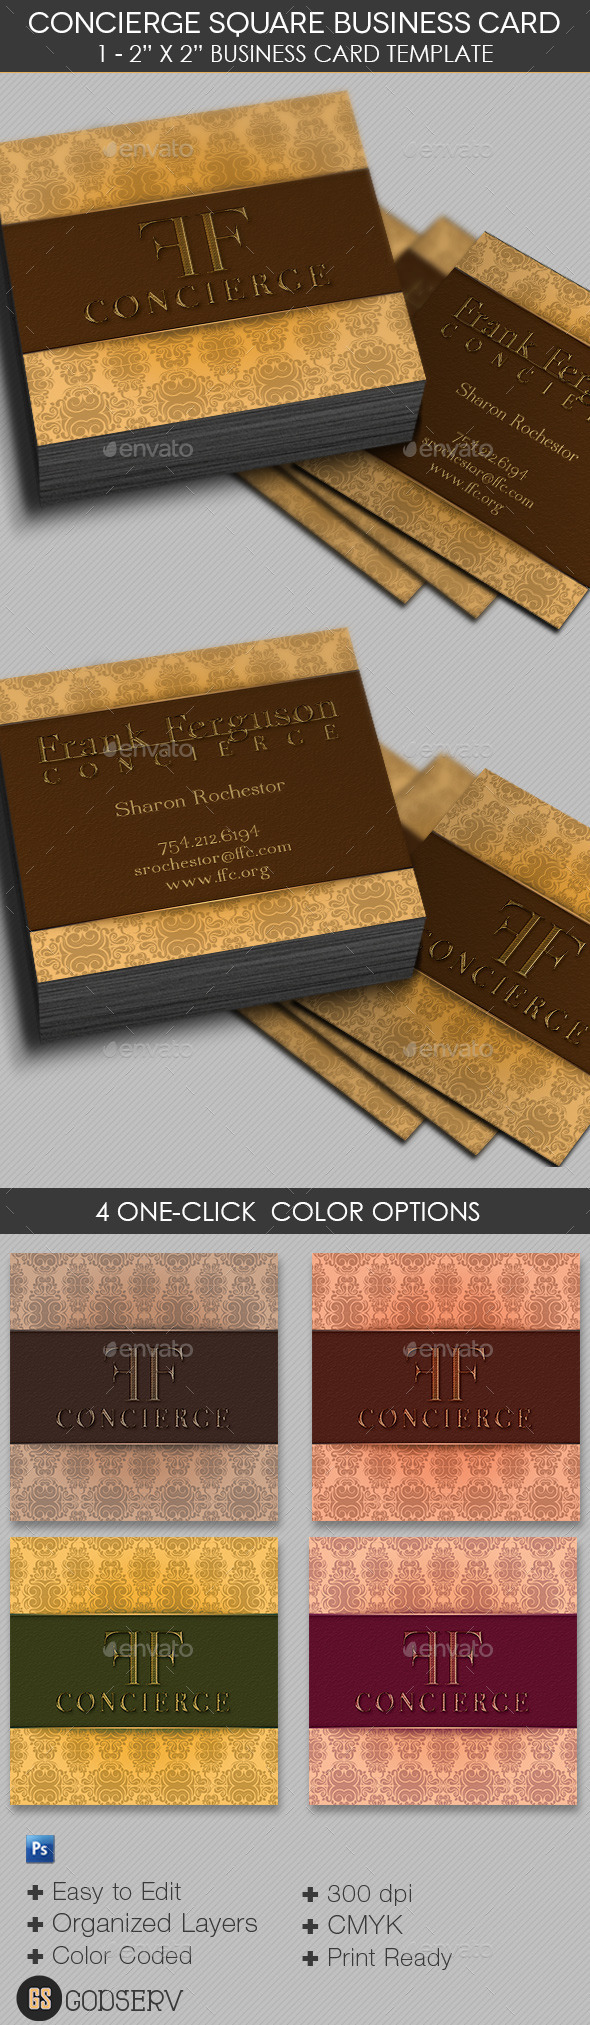 Concierge Square Business Card Template - Industry Specific Business Cards